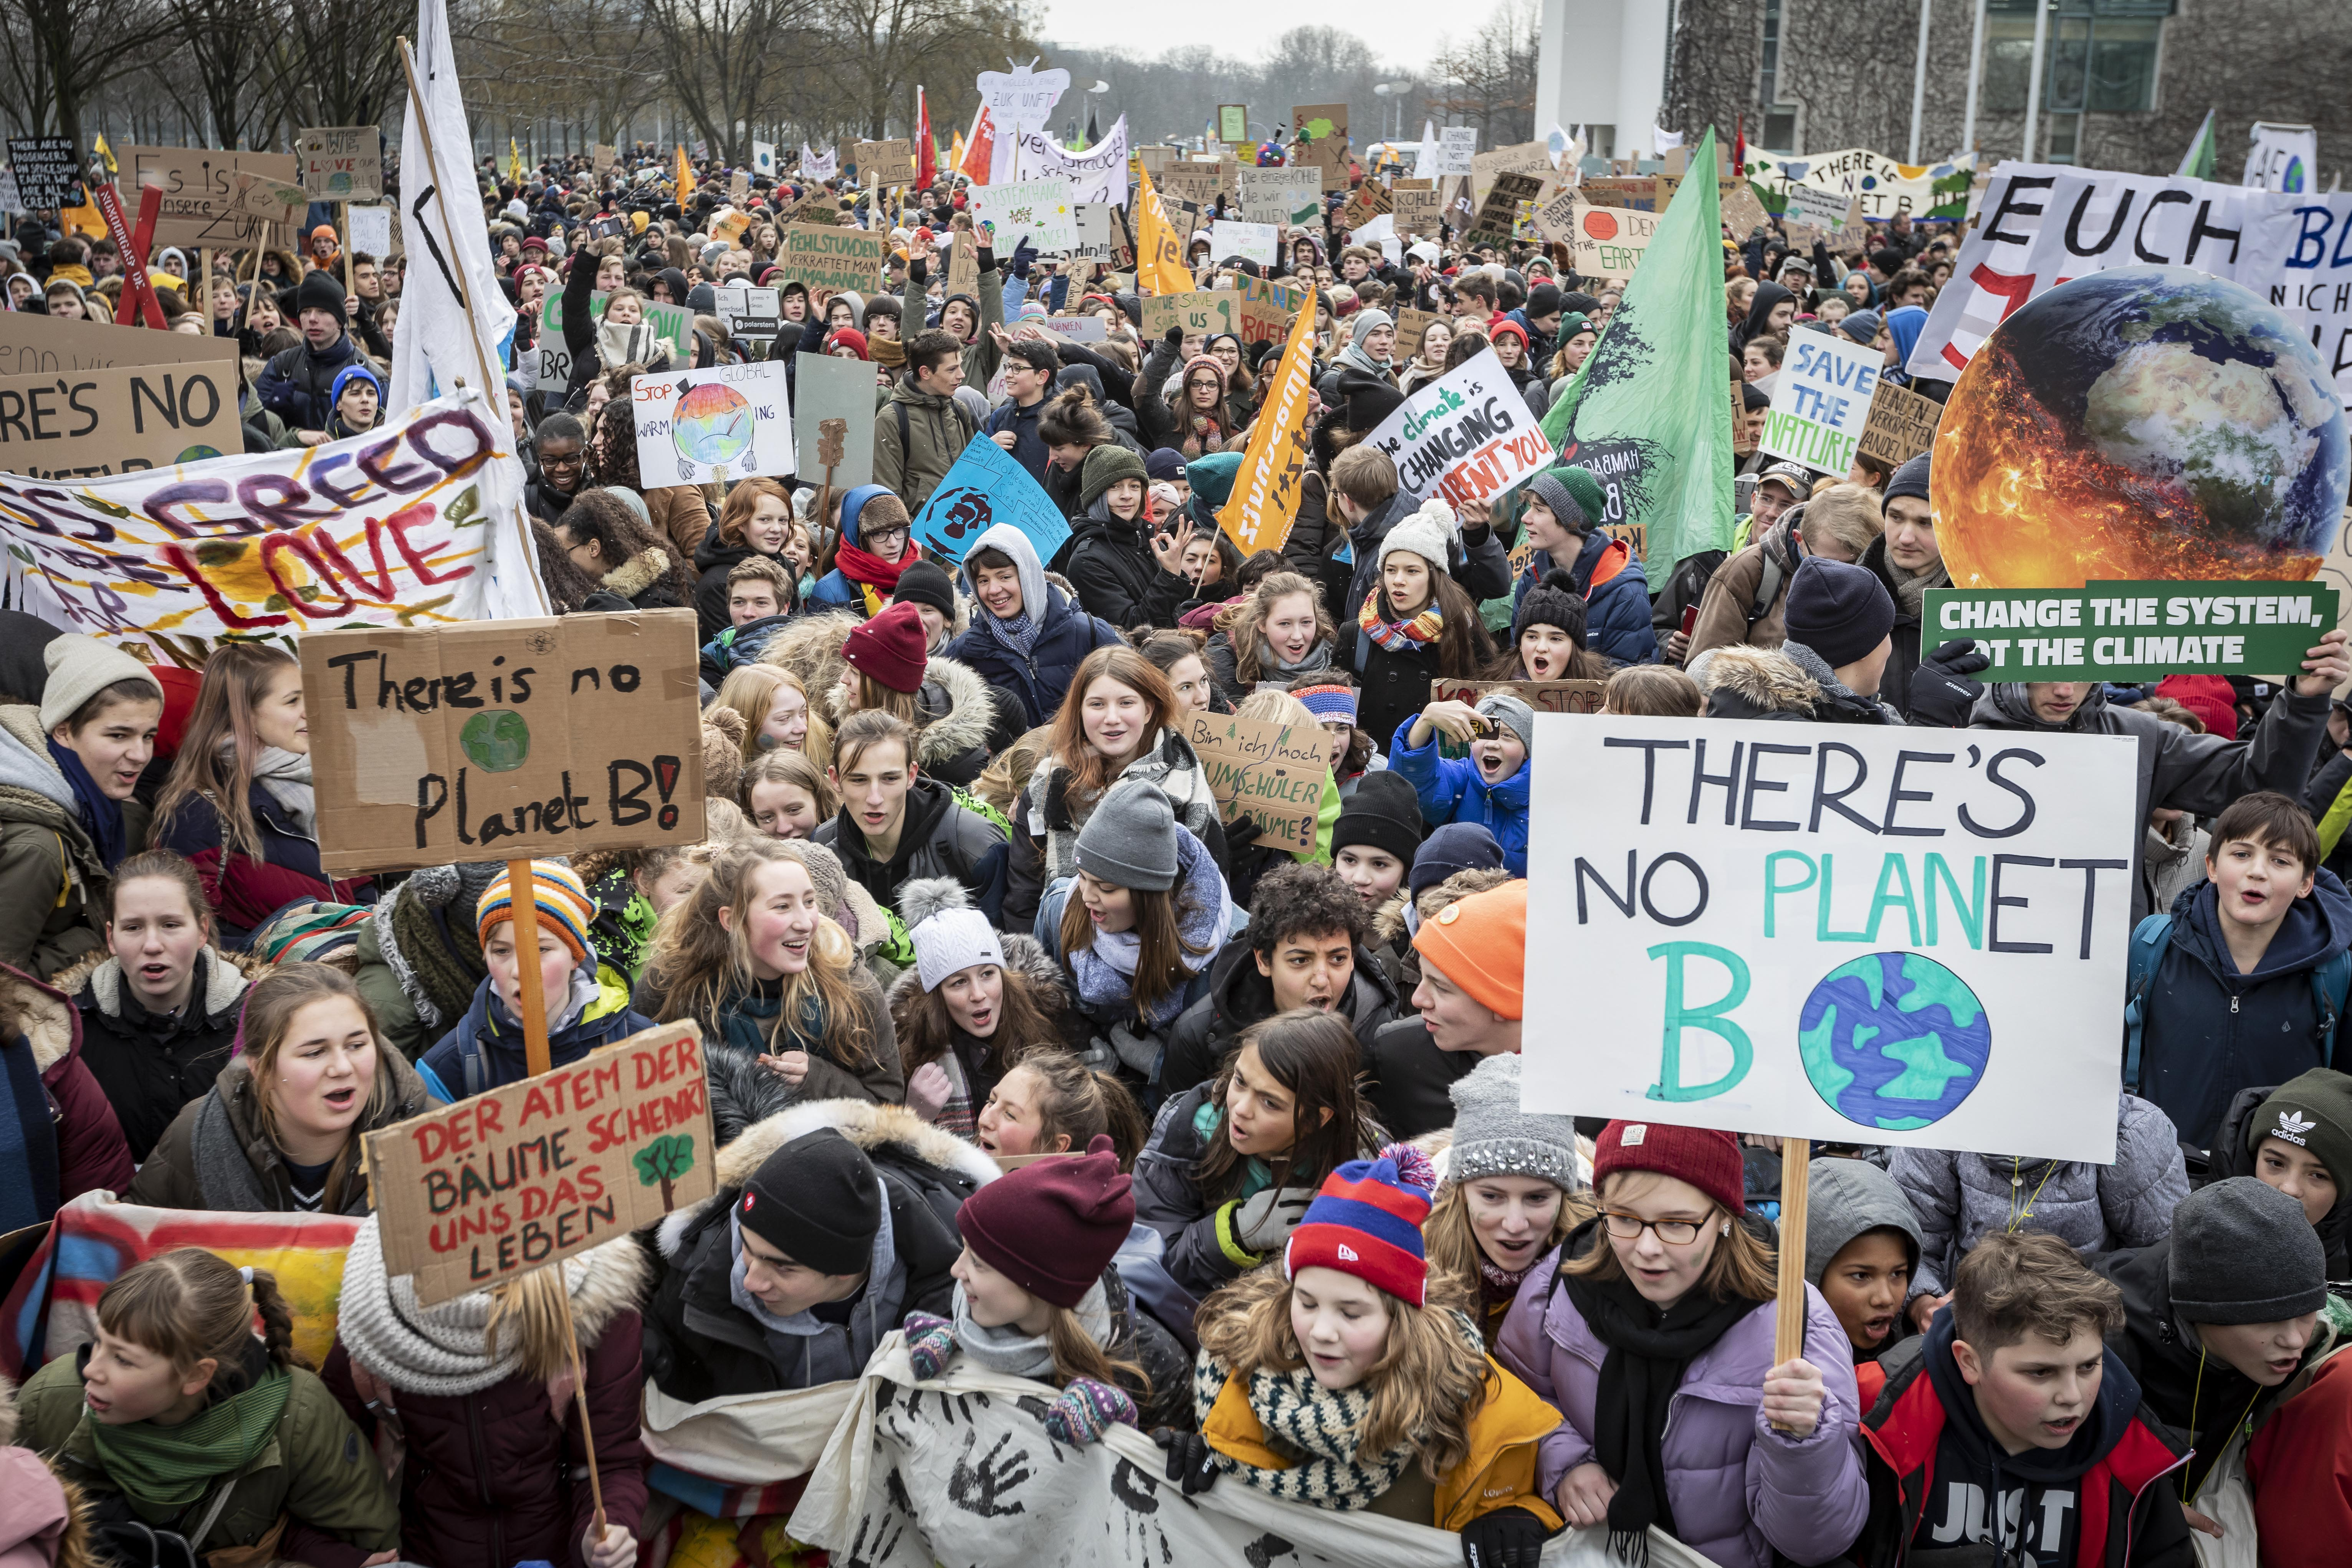 manifestazione del fridays for future a Berlino